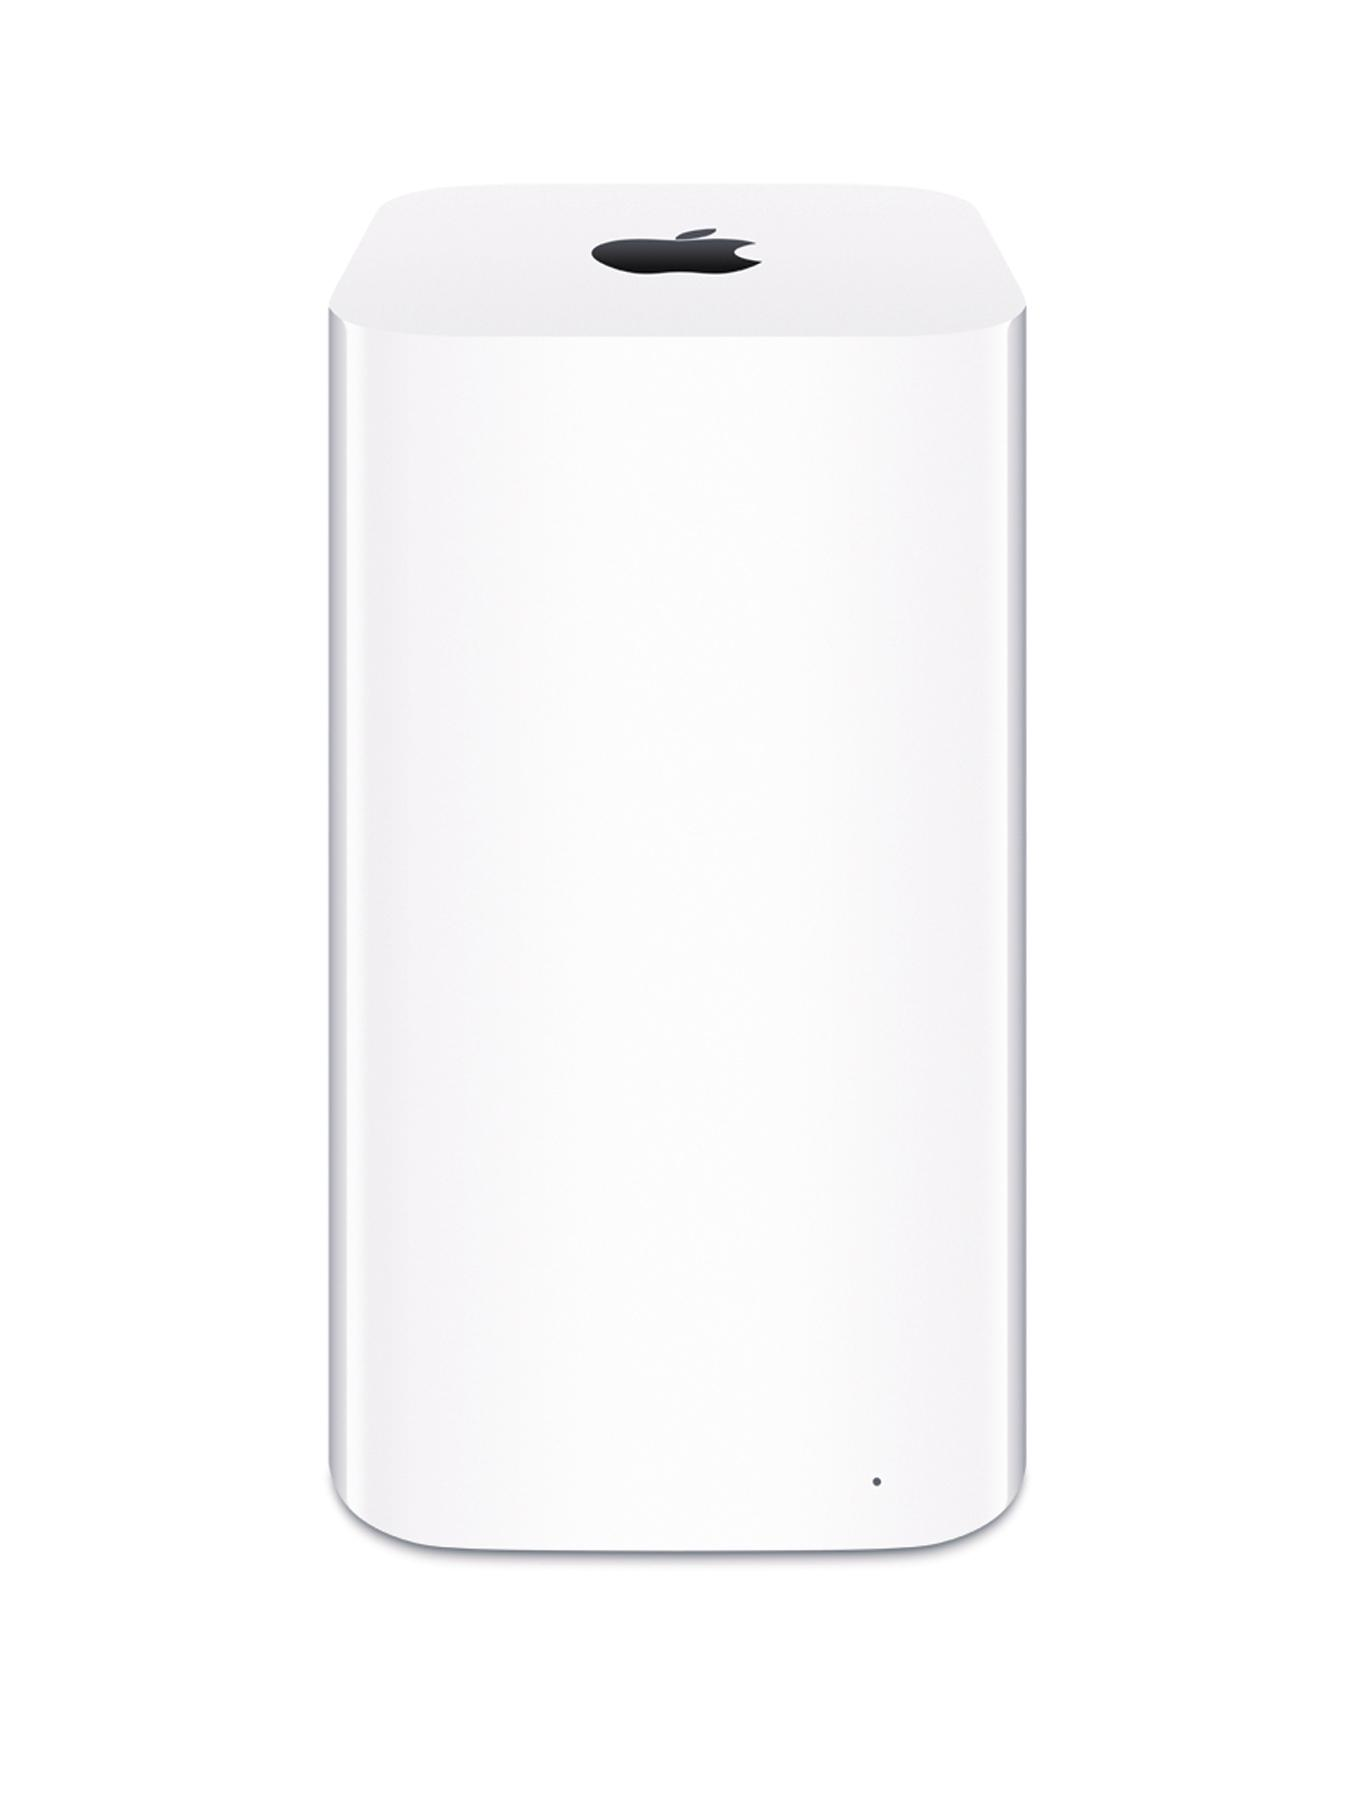 Apple ME182B/A AirPort Time Capsule 802.11AC 3TB - White